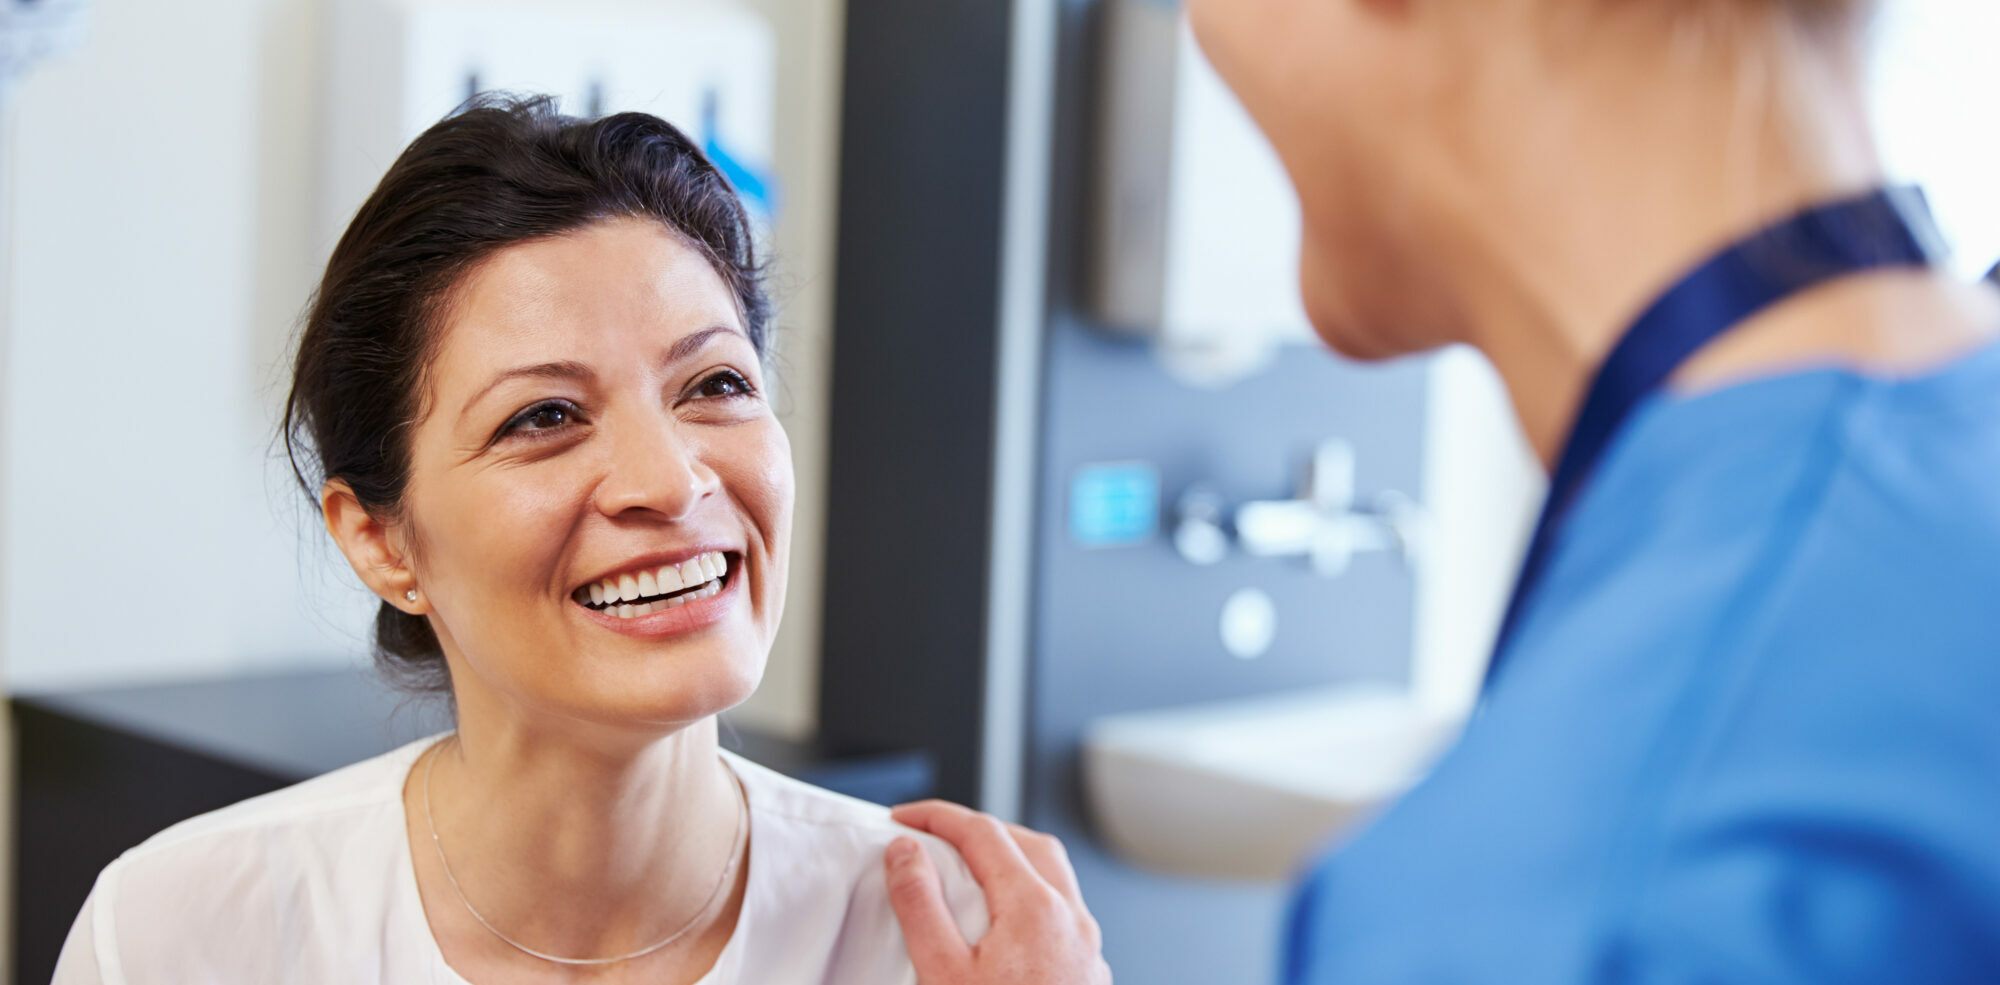 female patient smiling at her doctor after a good patient experience | Vanguard Communications | Denver